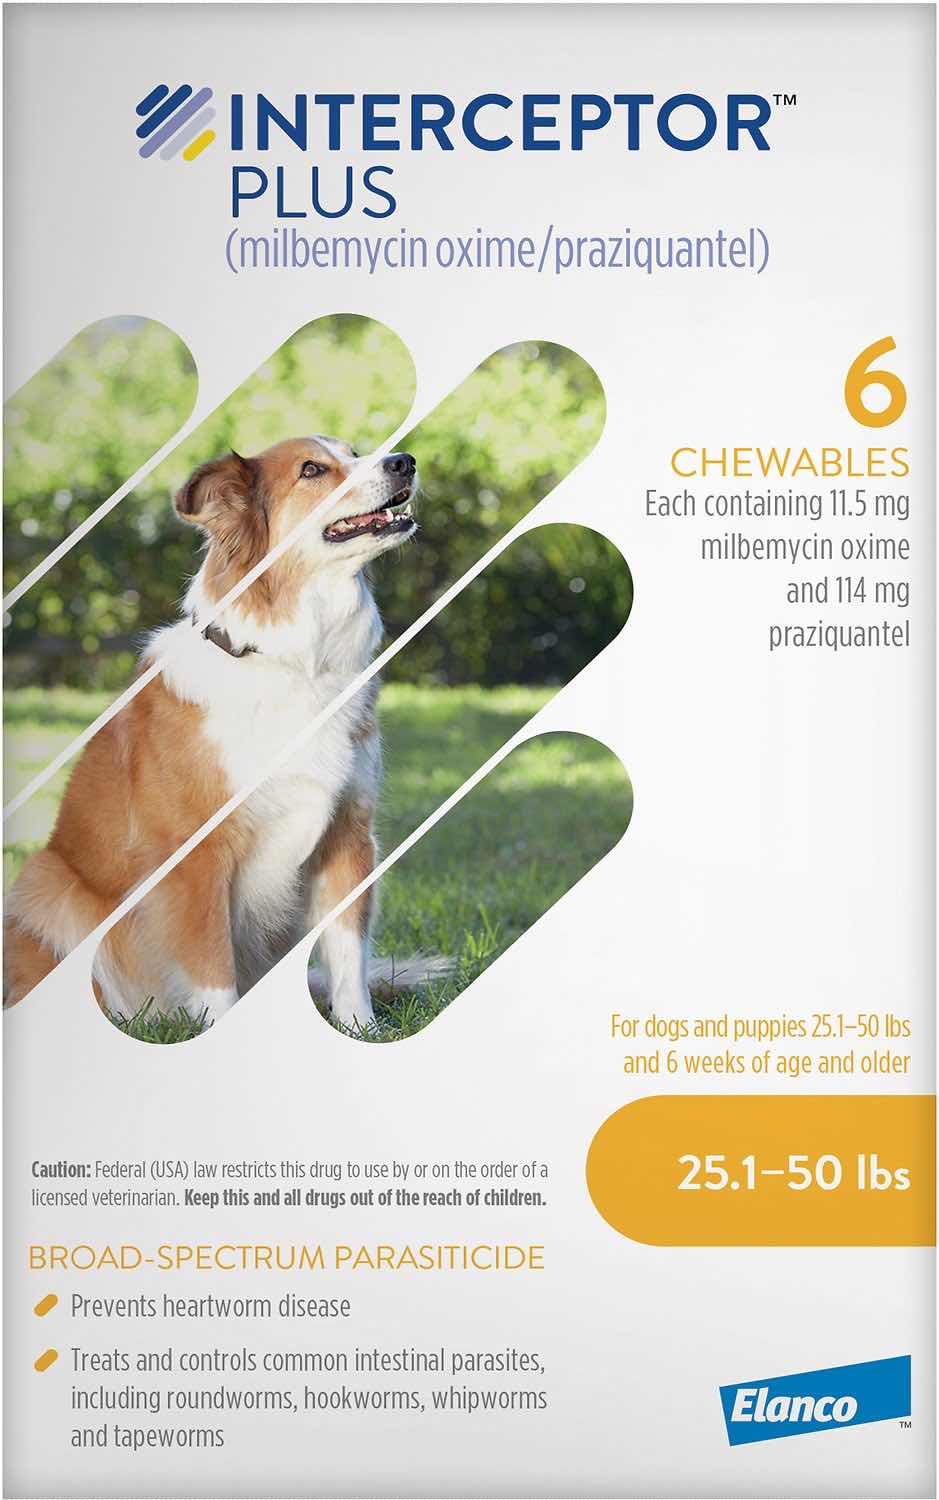 Interceptor Plus 6 chewables for dogs 25.1-50 lbs (Yellow) 1